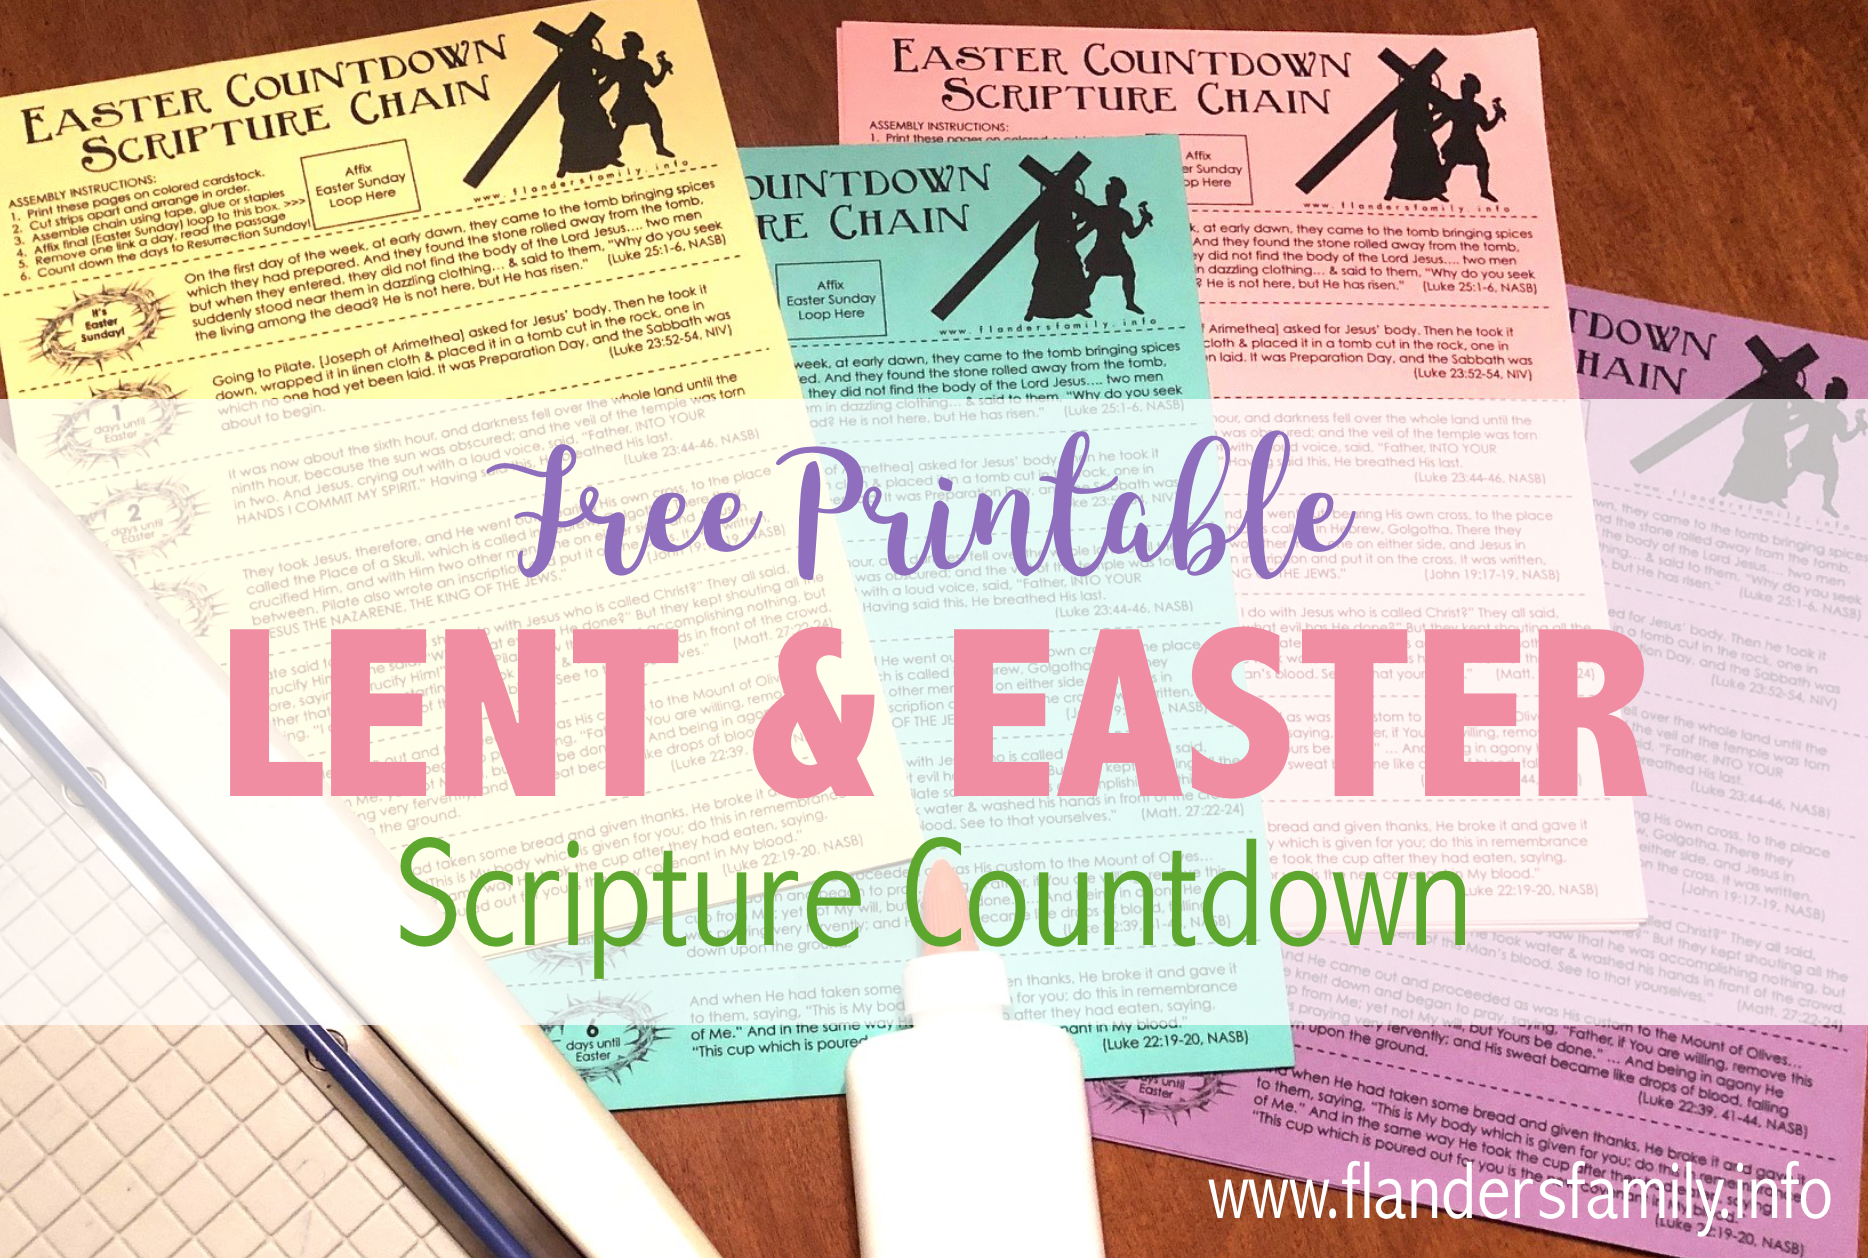 Download Scripture Chain: Countdown through Lent to Easter ...